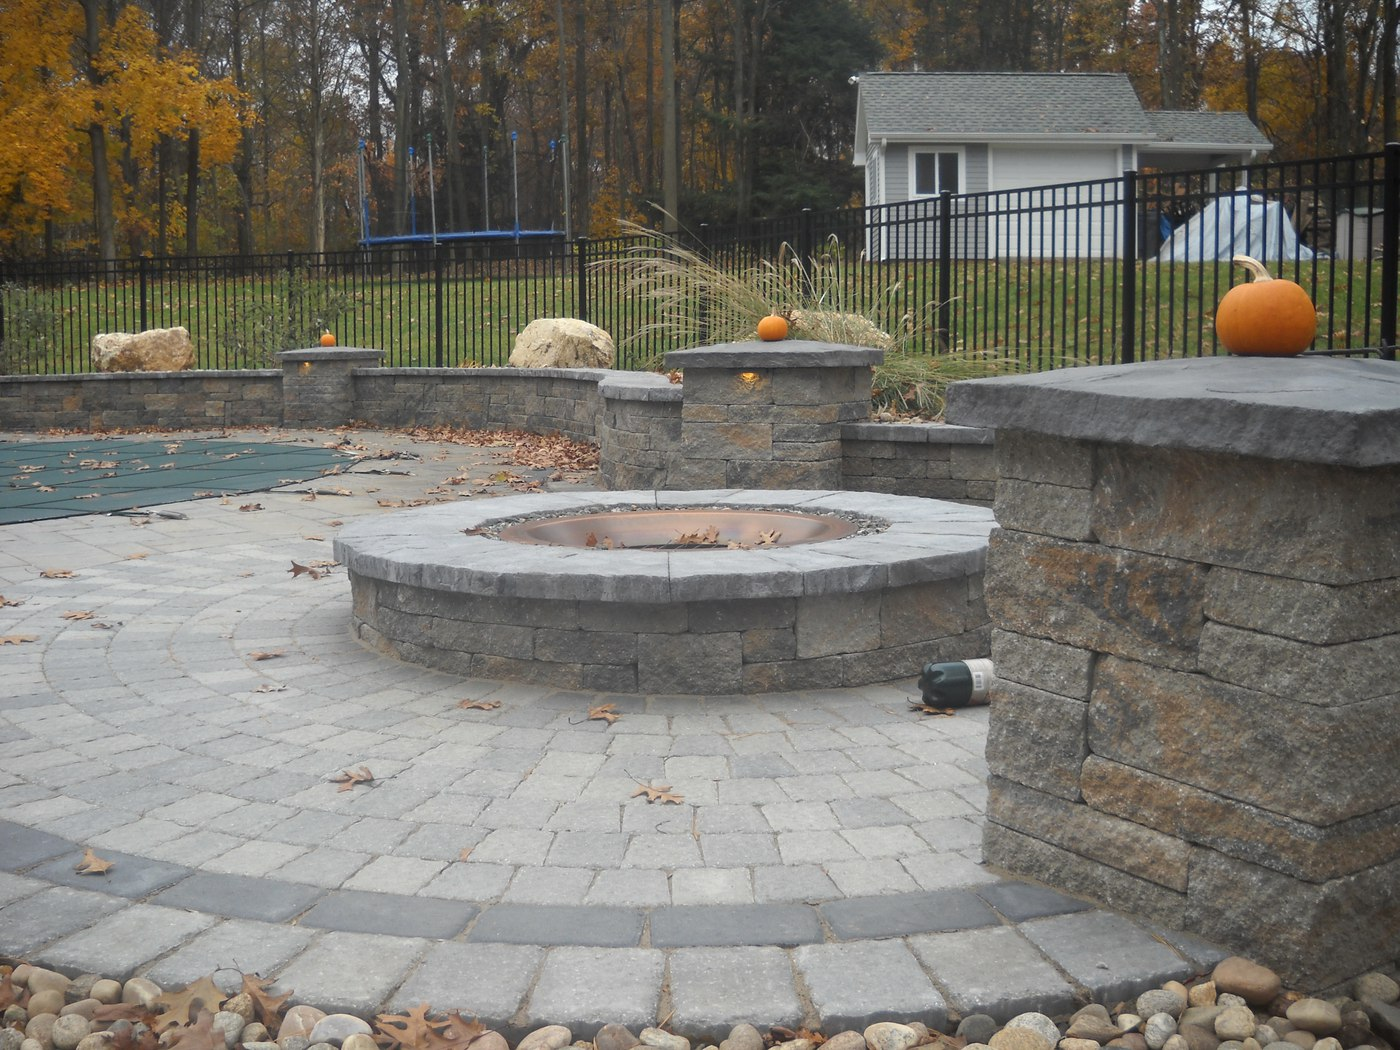 5 Things You Should Know Before You Receive A Paver Patio. Patio Furniture Topeka Ks. Premier Patio Furniture Reviews. Patio Furniture Discount Free Shipping. Mallorca Patio Furniture Home Depot. Outdoor Furniture For Sale Wellington. Patio Furniture From Costco. Outdoor Furniture Rattan Sofa. Porch Swing Bed Birmingham Al